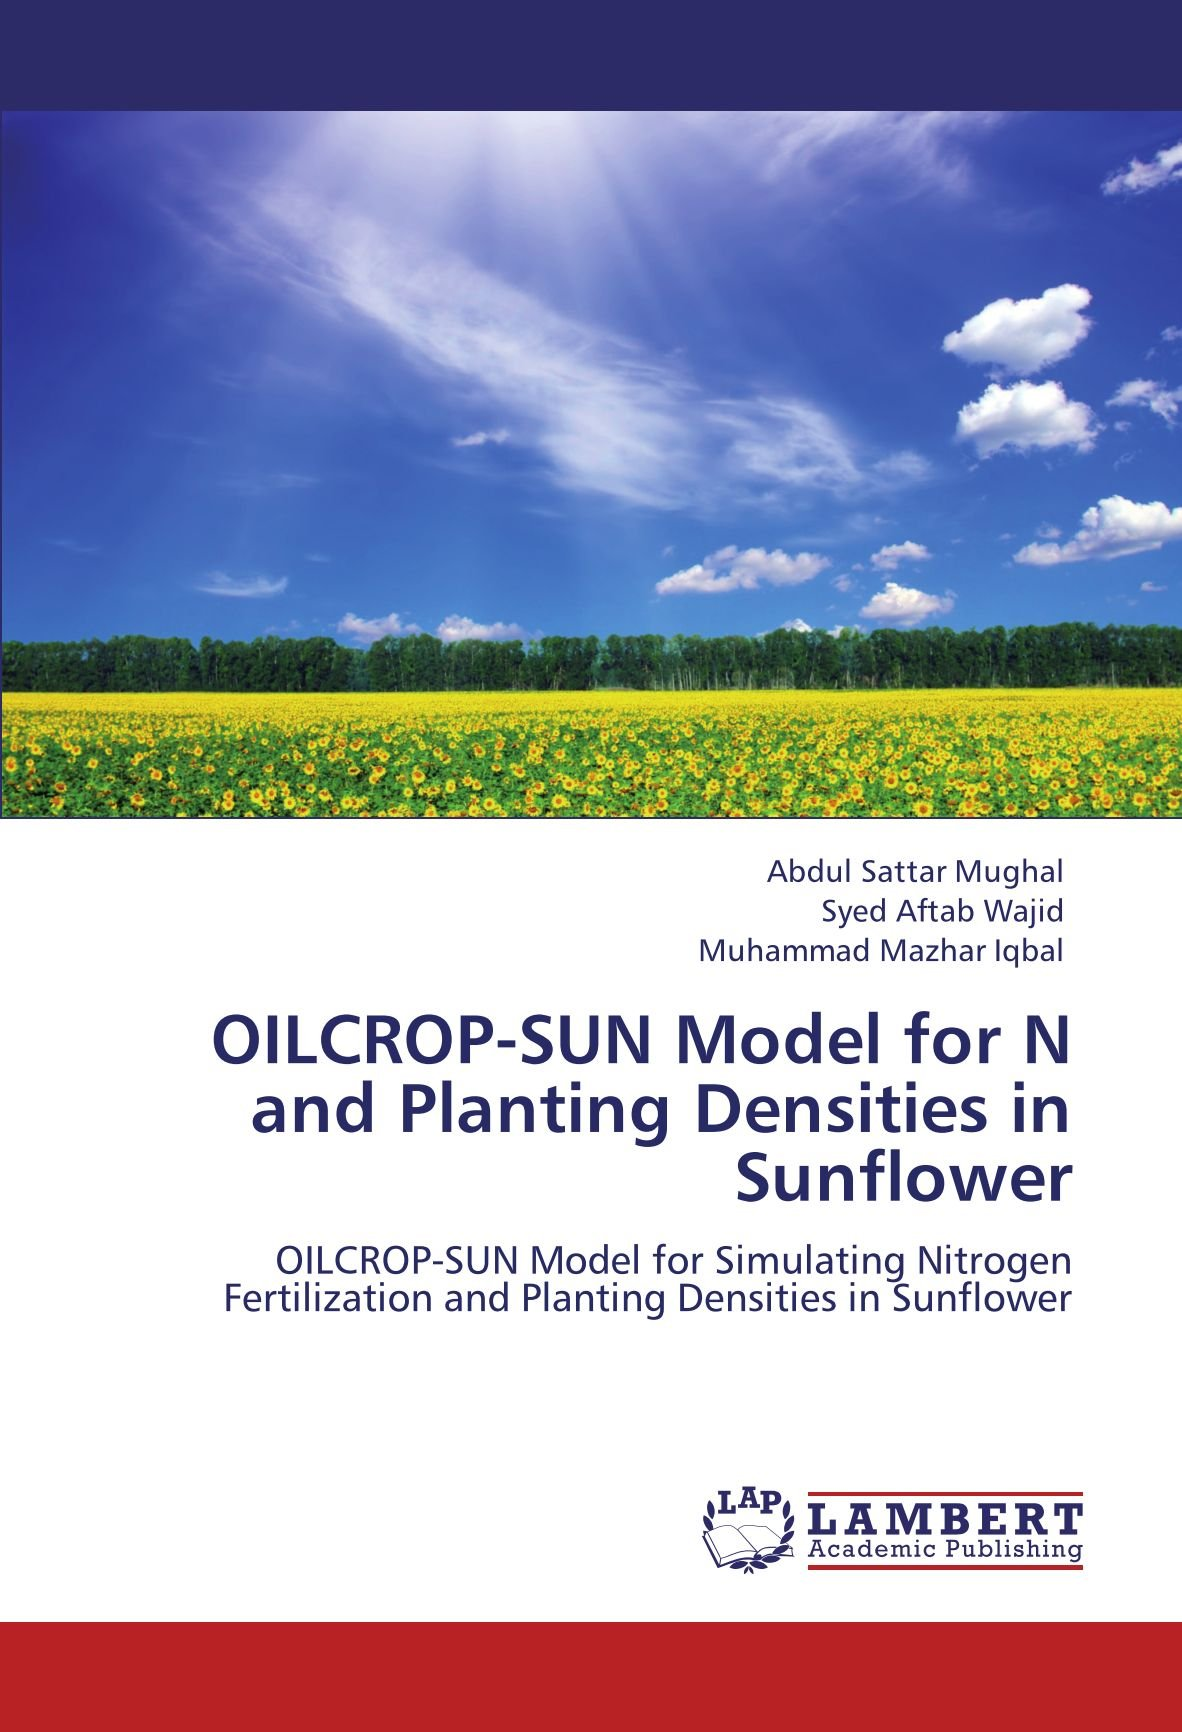 Download OILCROP-SUN Model for N and Planting Densities in Sunflower: OILCROP-SUN Model for Simulating Nitrogen Fertilization and Planting Densities in Sunflower ebook